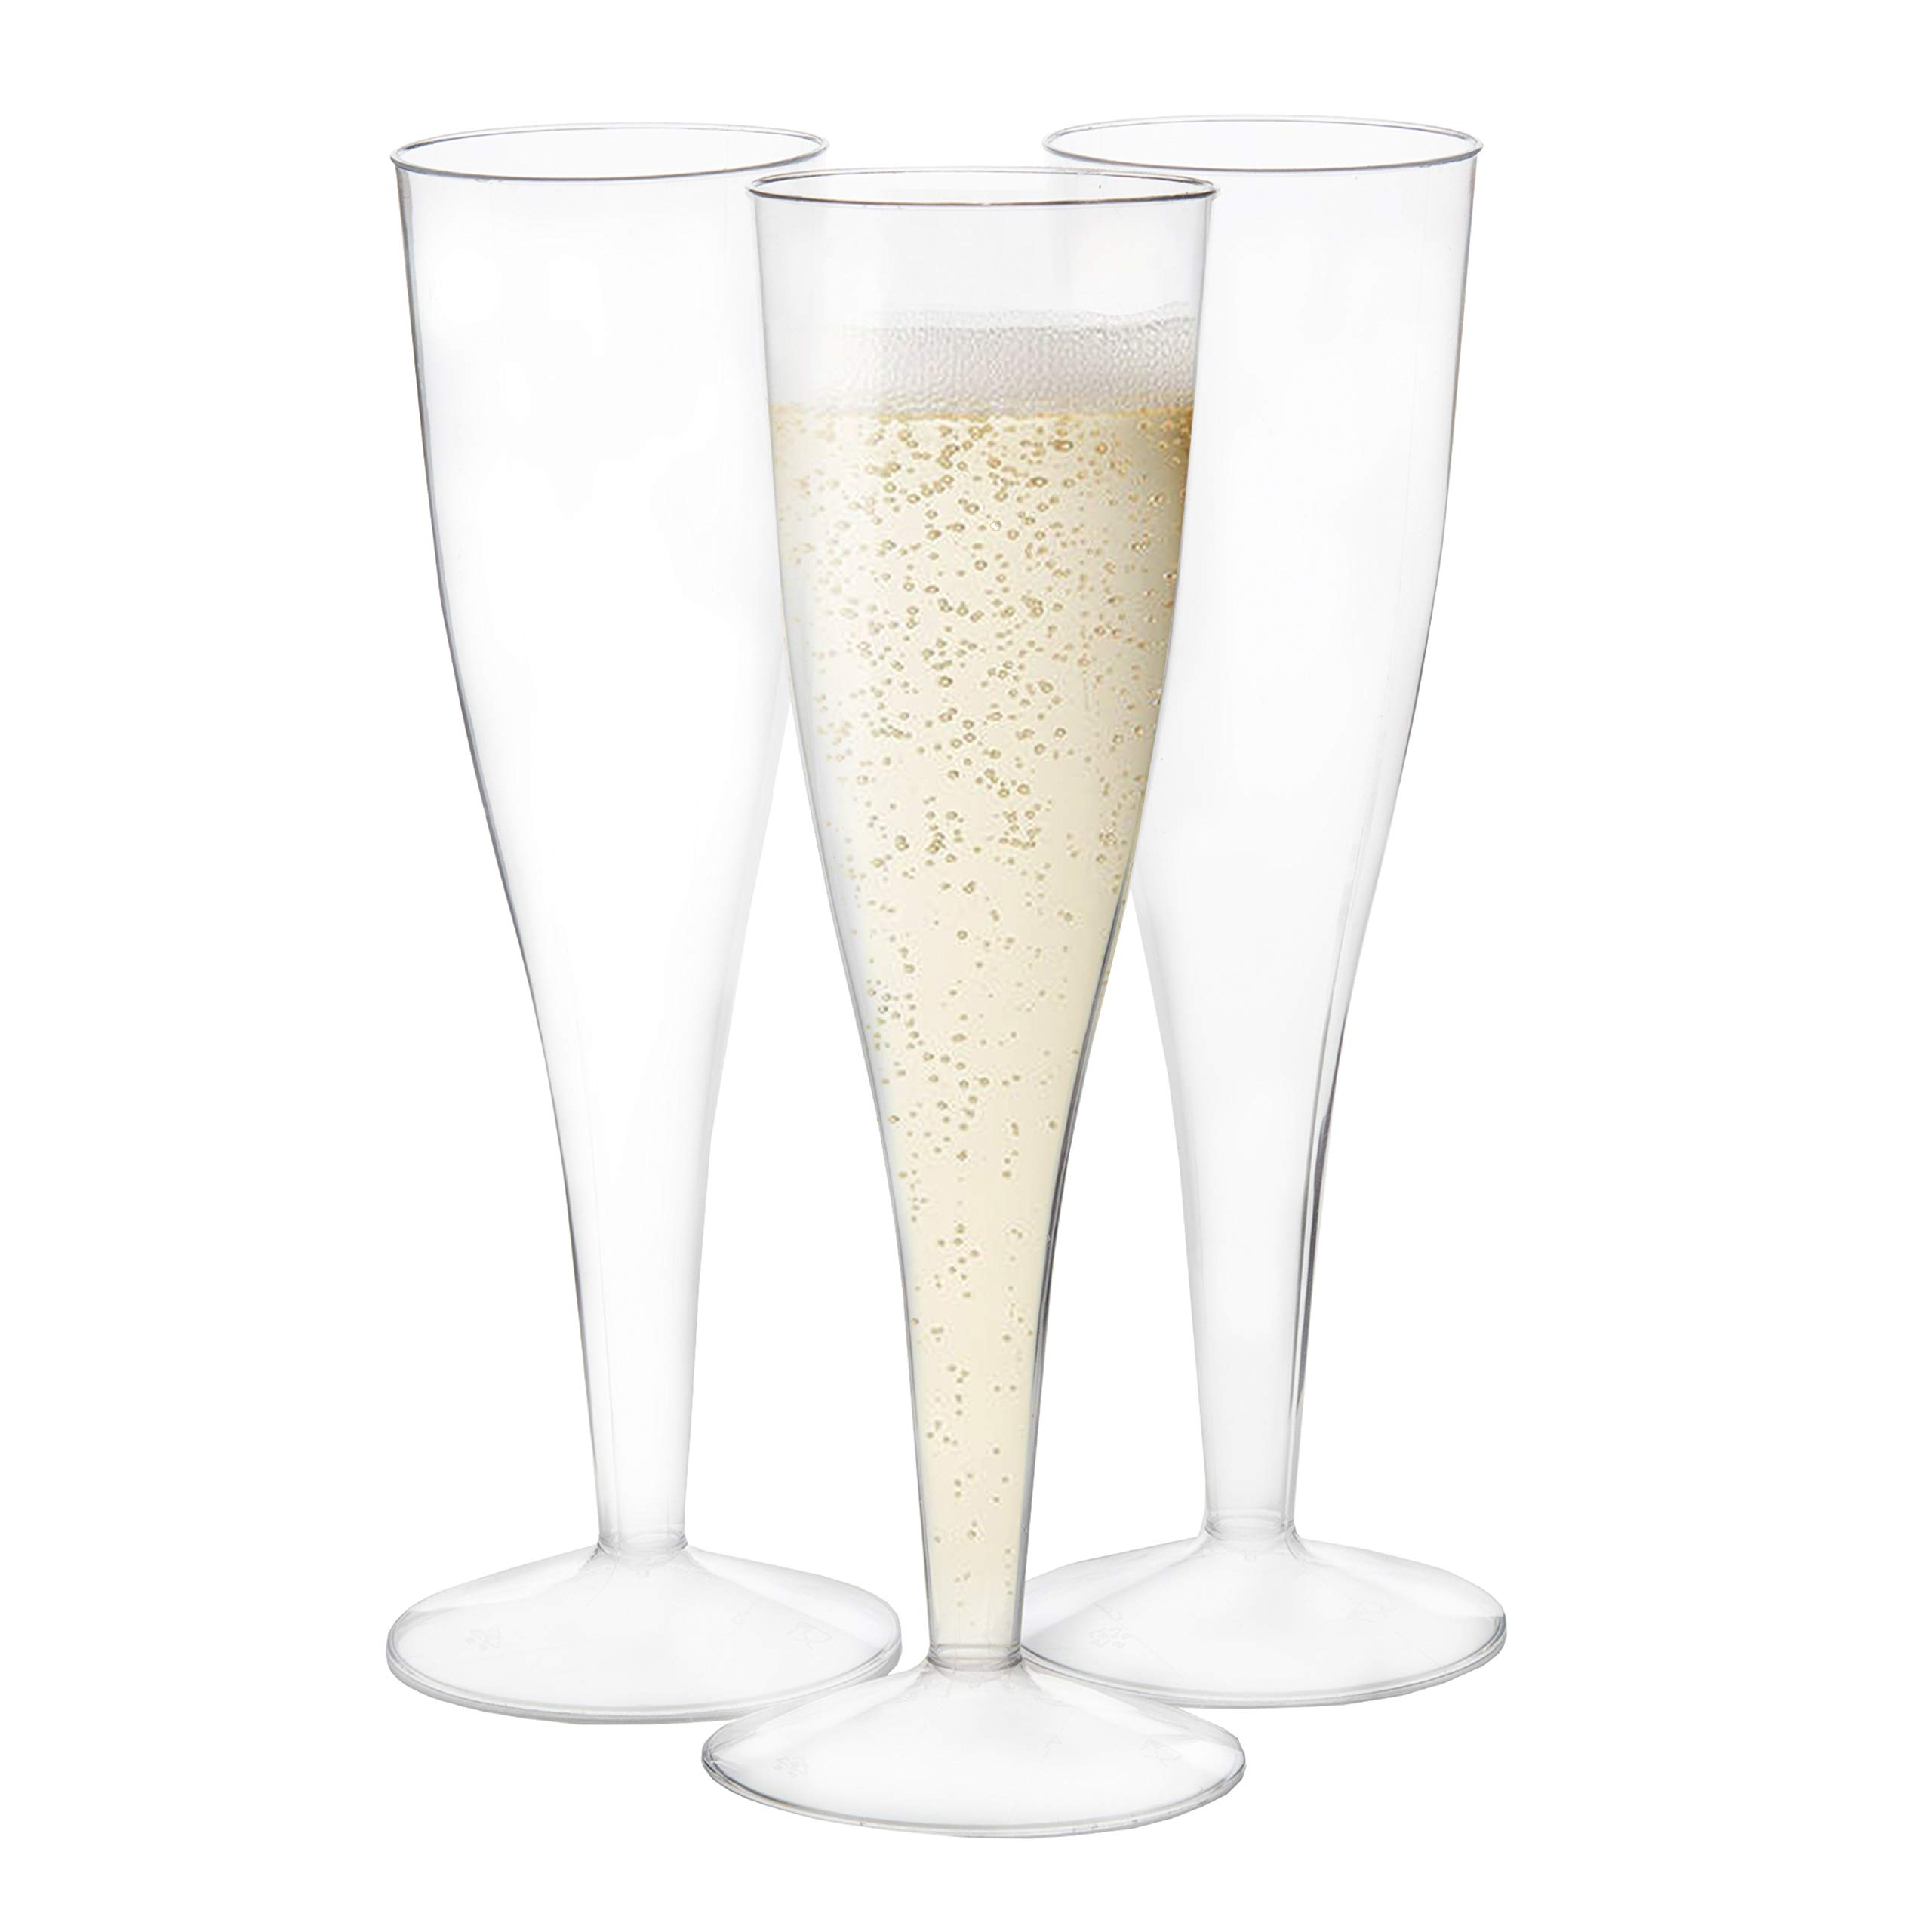 120 Premium Plastic Champagne Flutes - Bulk One Piece Champagne Glasses for Wedding, Party, Toasting, Mimosa or Cocktails